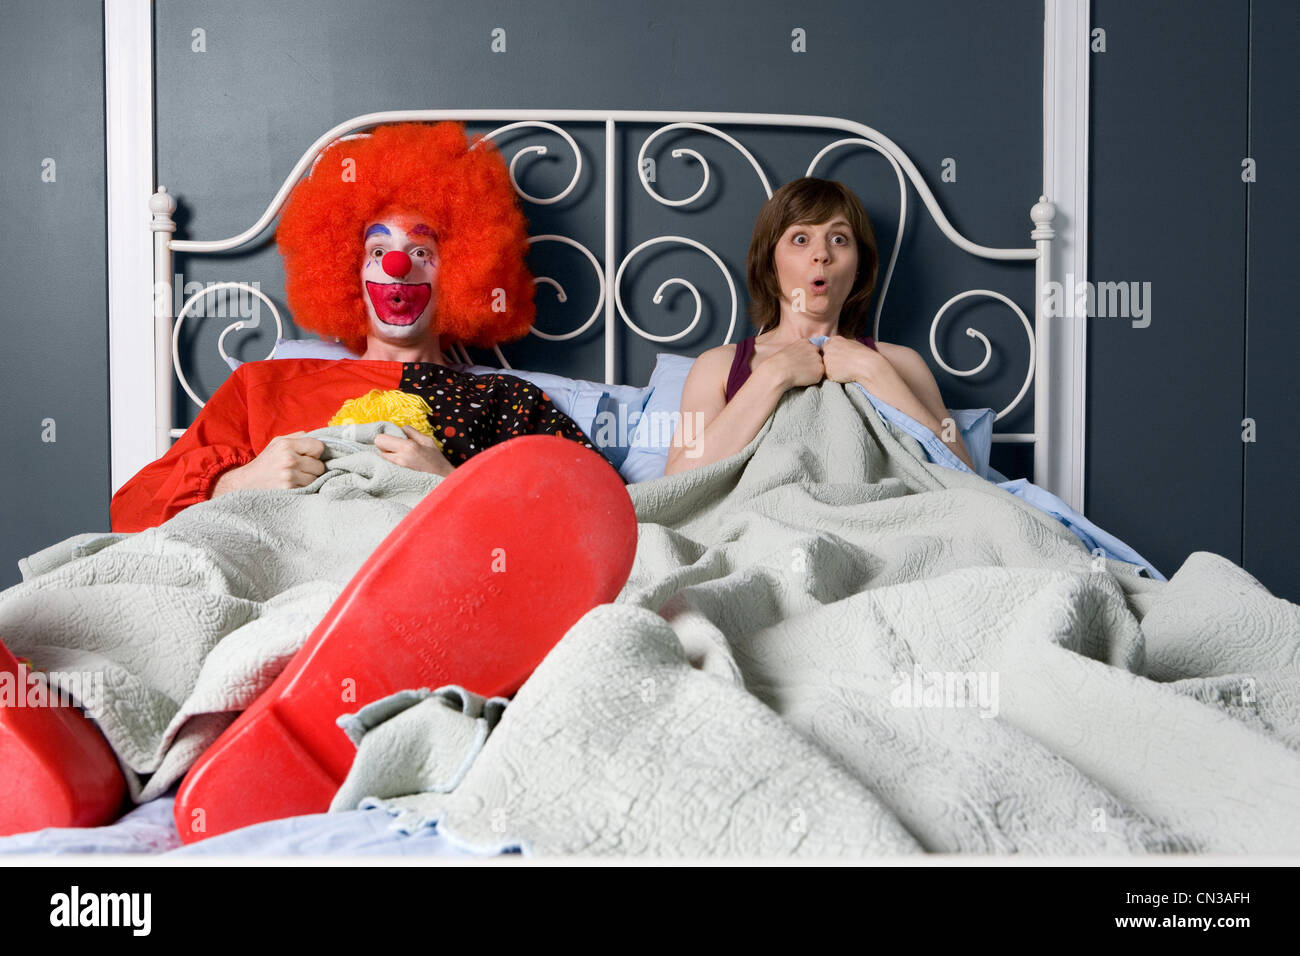 Clown and woman surprised to find themselves in bed together - Stock Image